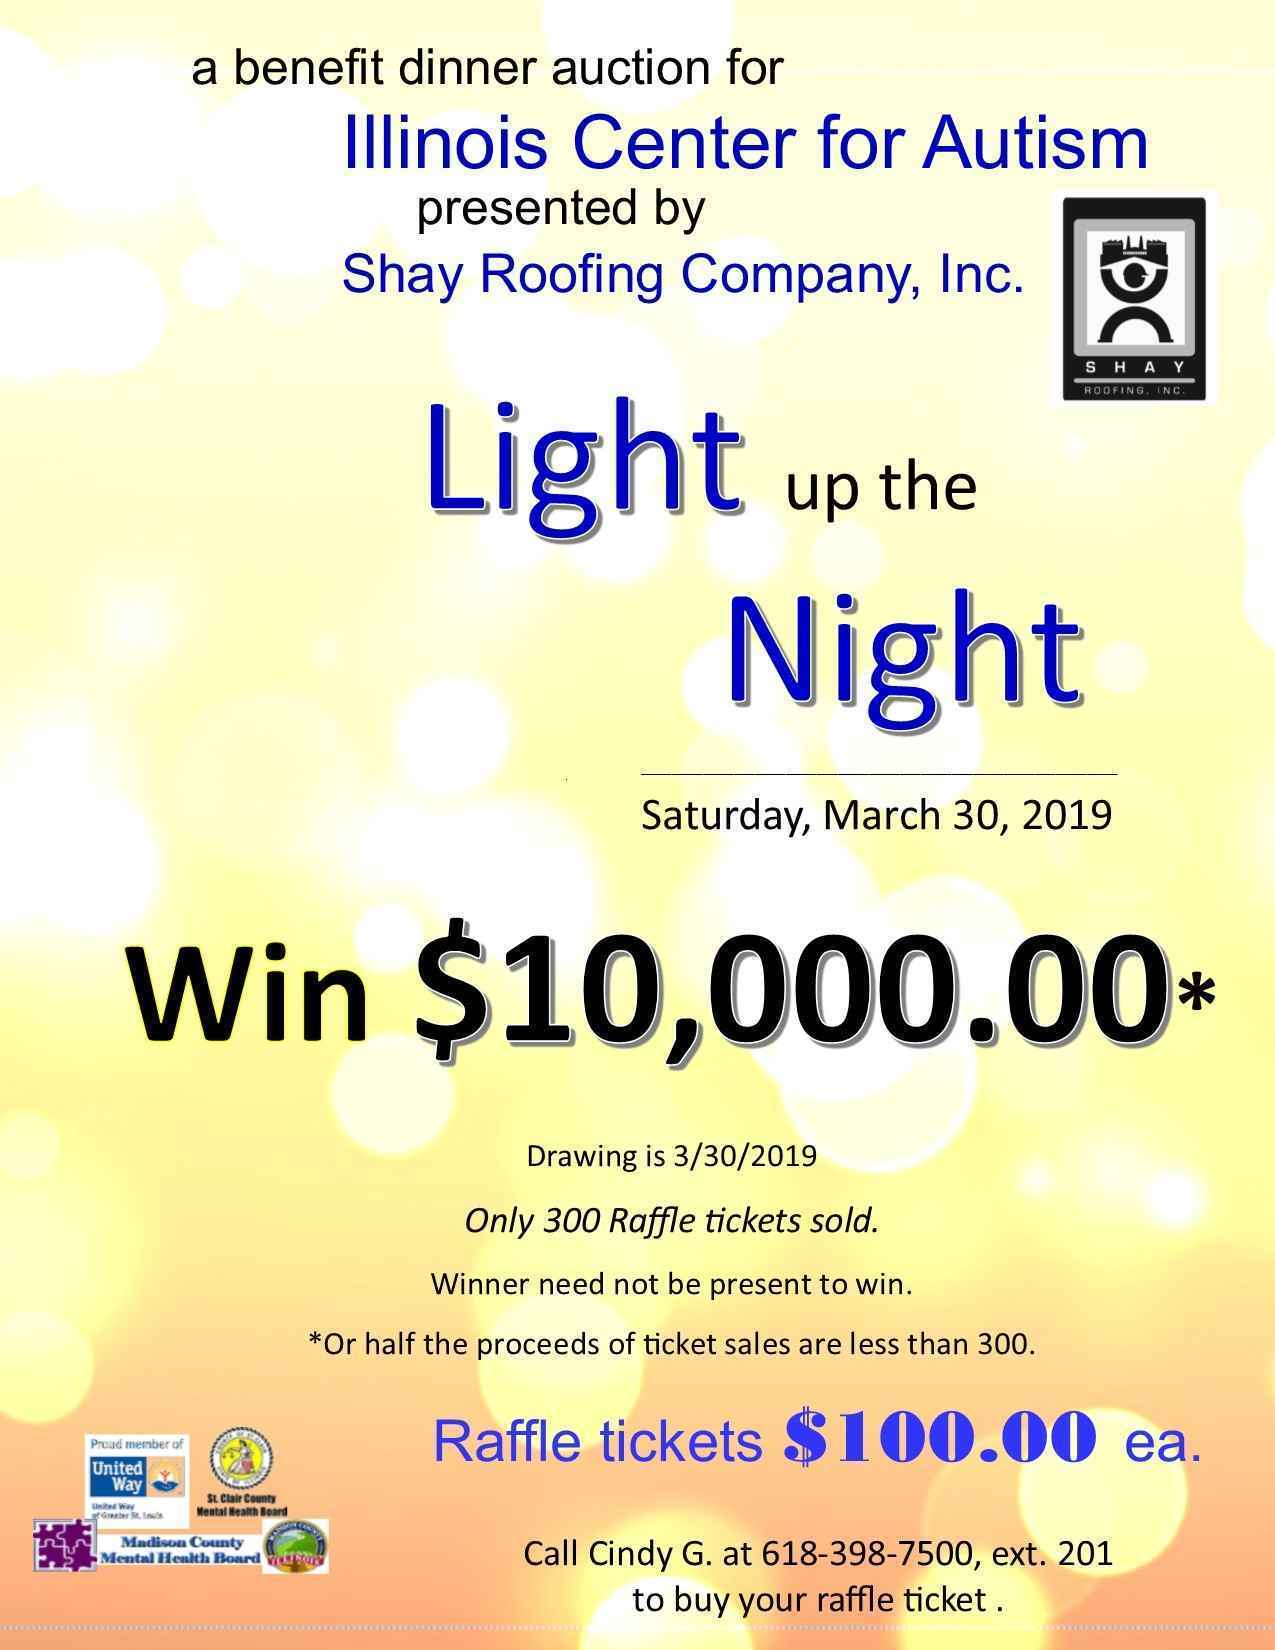 Illinois Center for Autism's Light up the Night Spring Dinner Auction image